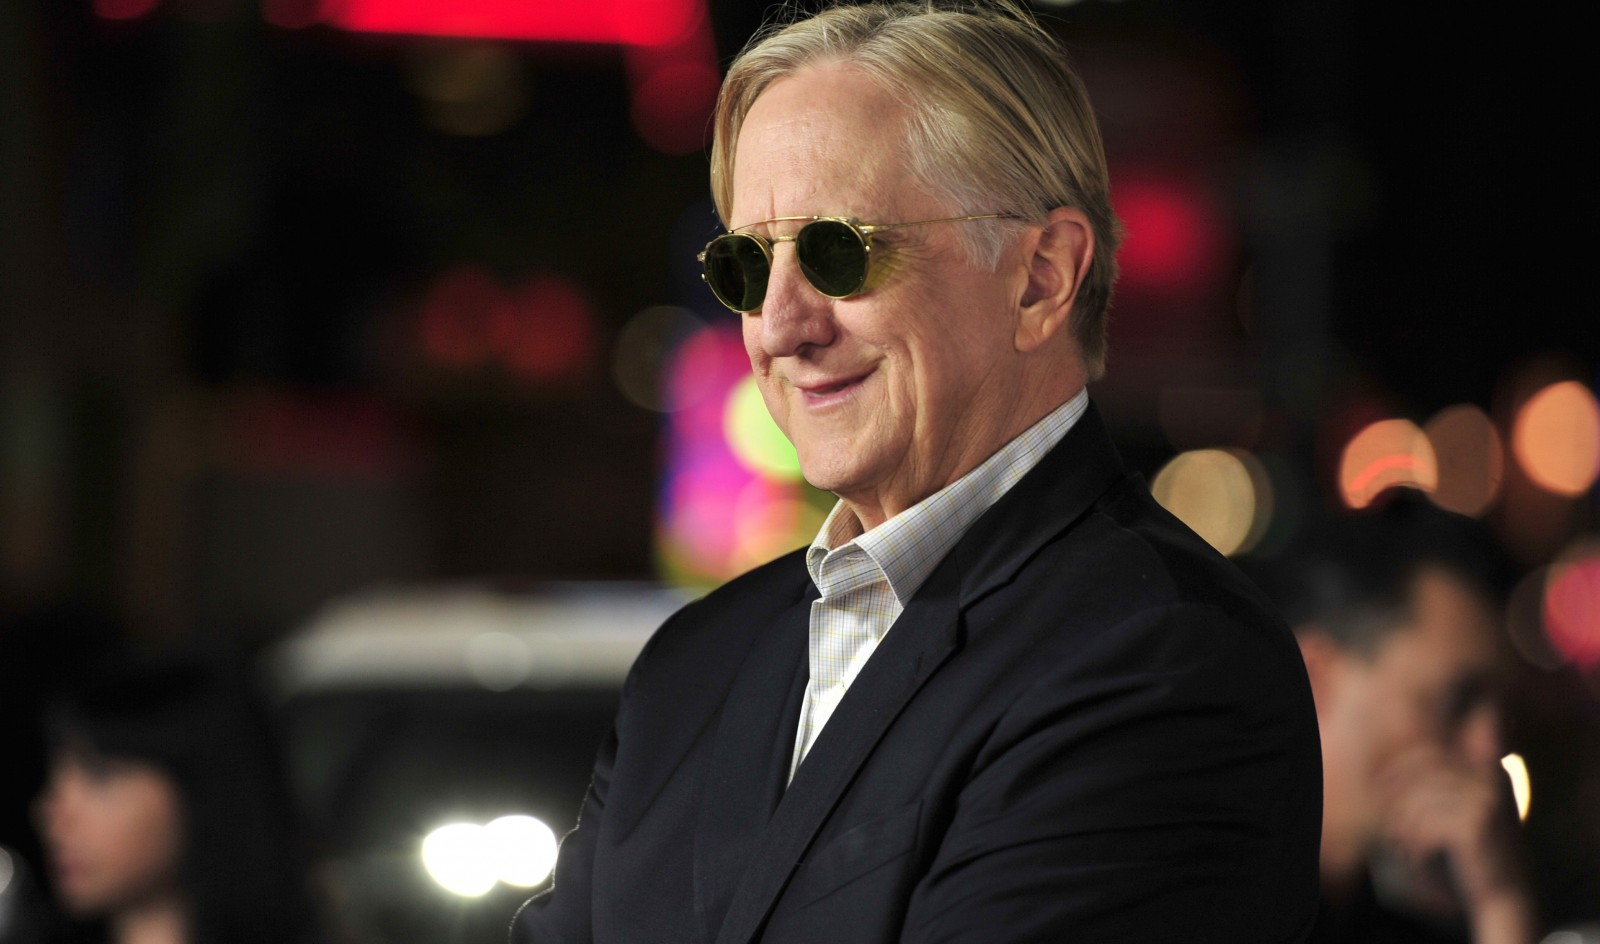 T-Bone Burnett represented the Music First Coalition. (Getty Images)